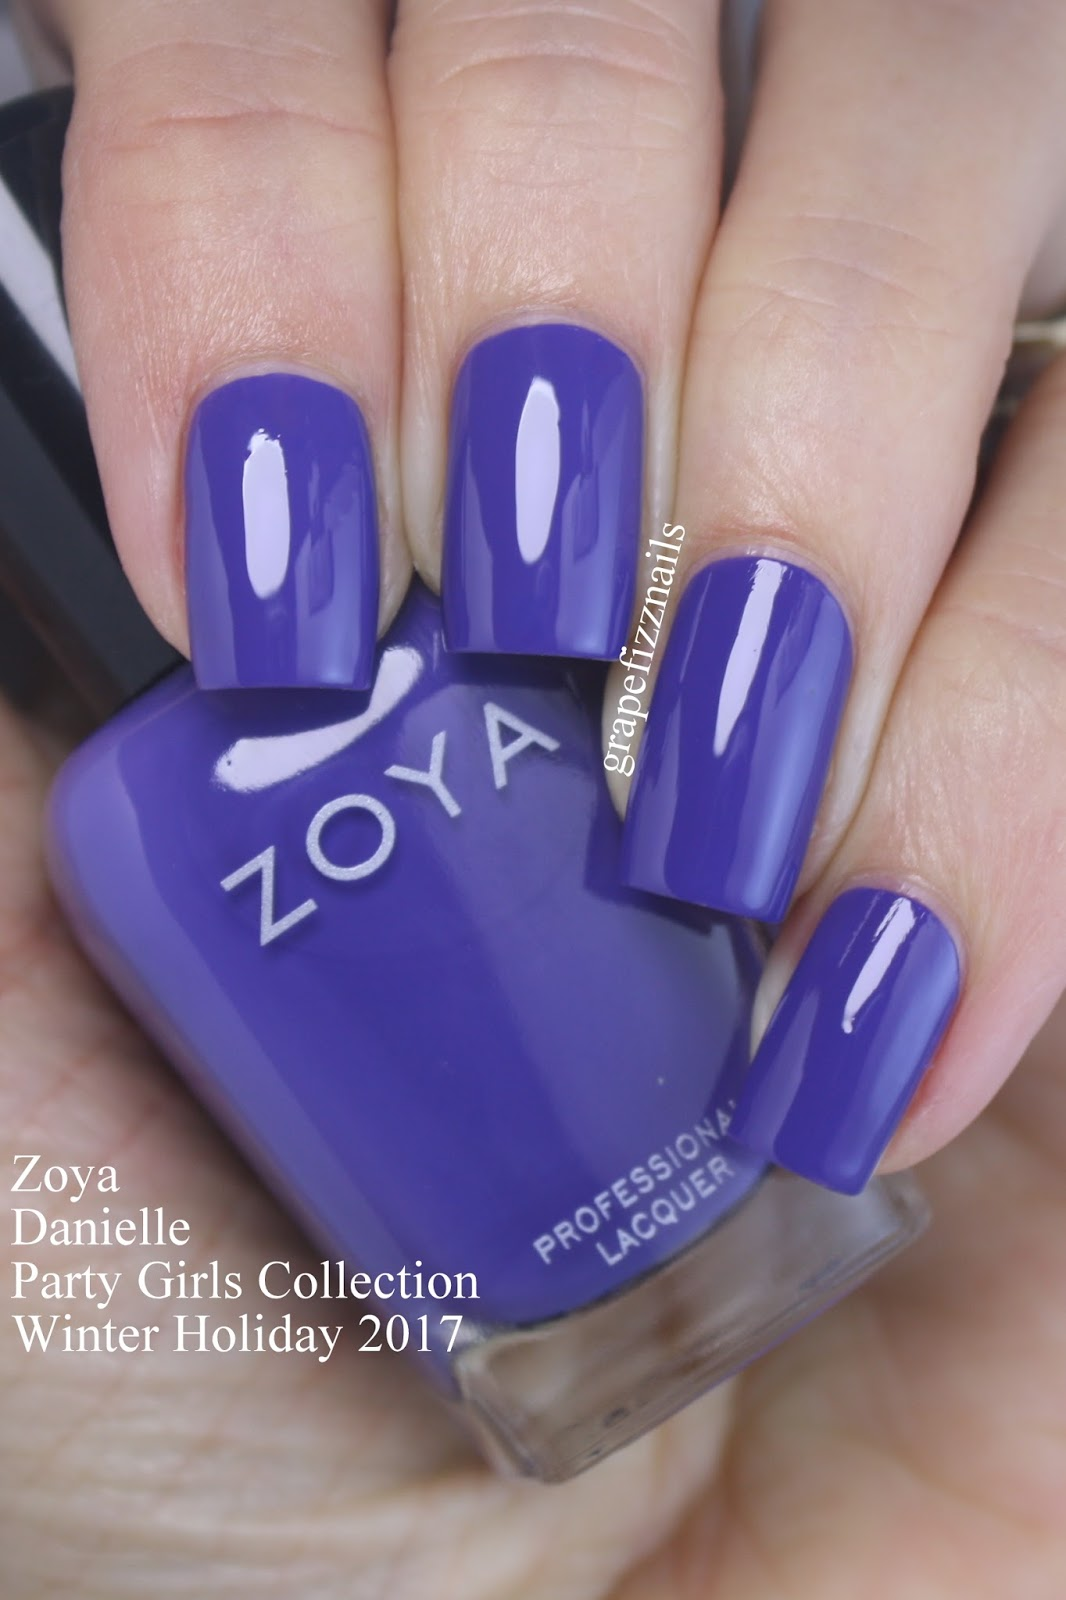 Grape Fizz Nails: Zoya Party Girls Collection Winter Holiday 2017